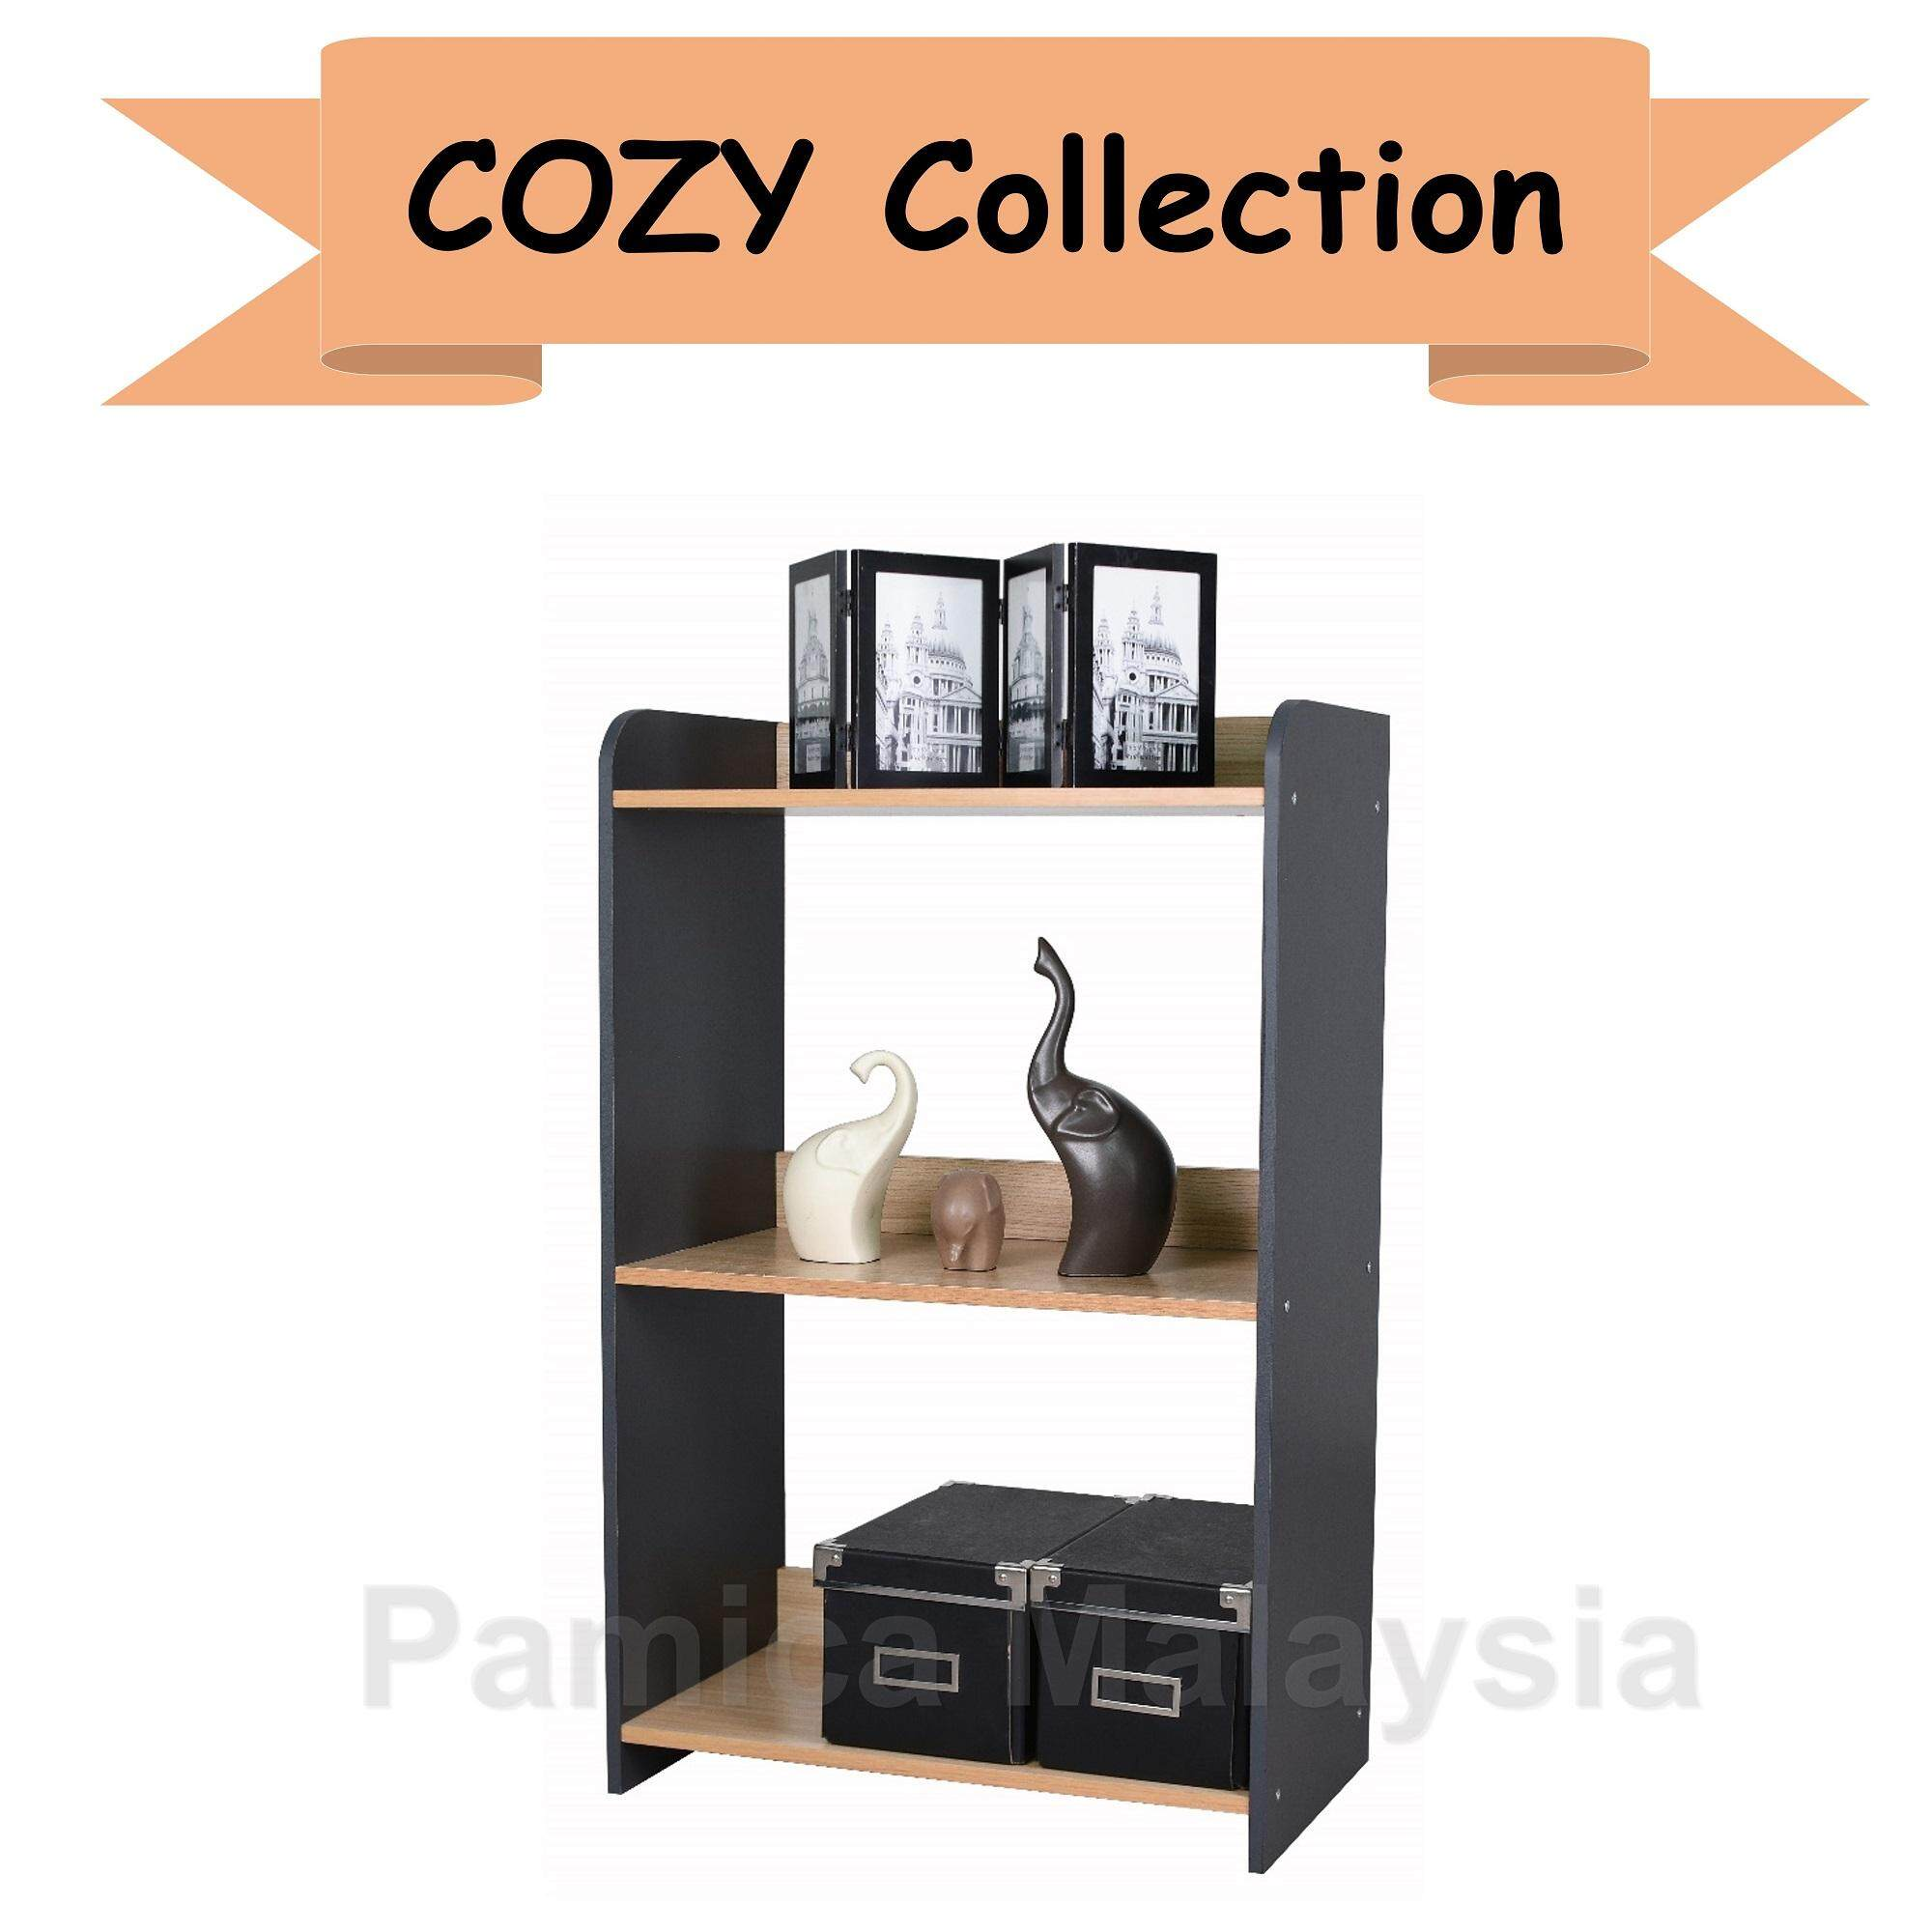 PAMICA SV6071 Cozy 3-Tier Utility Shelf in Oak/Dark Grey Finished